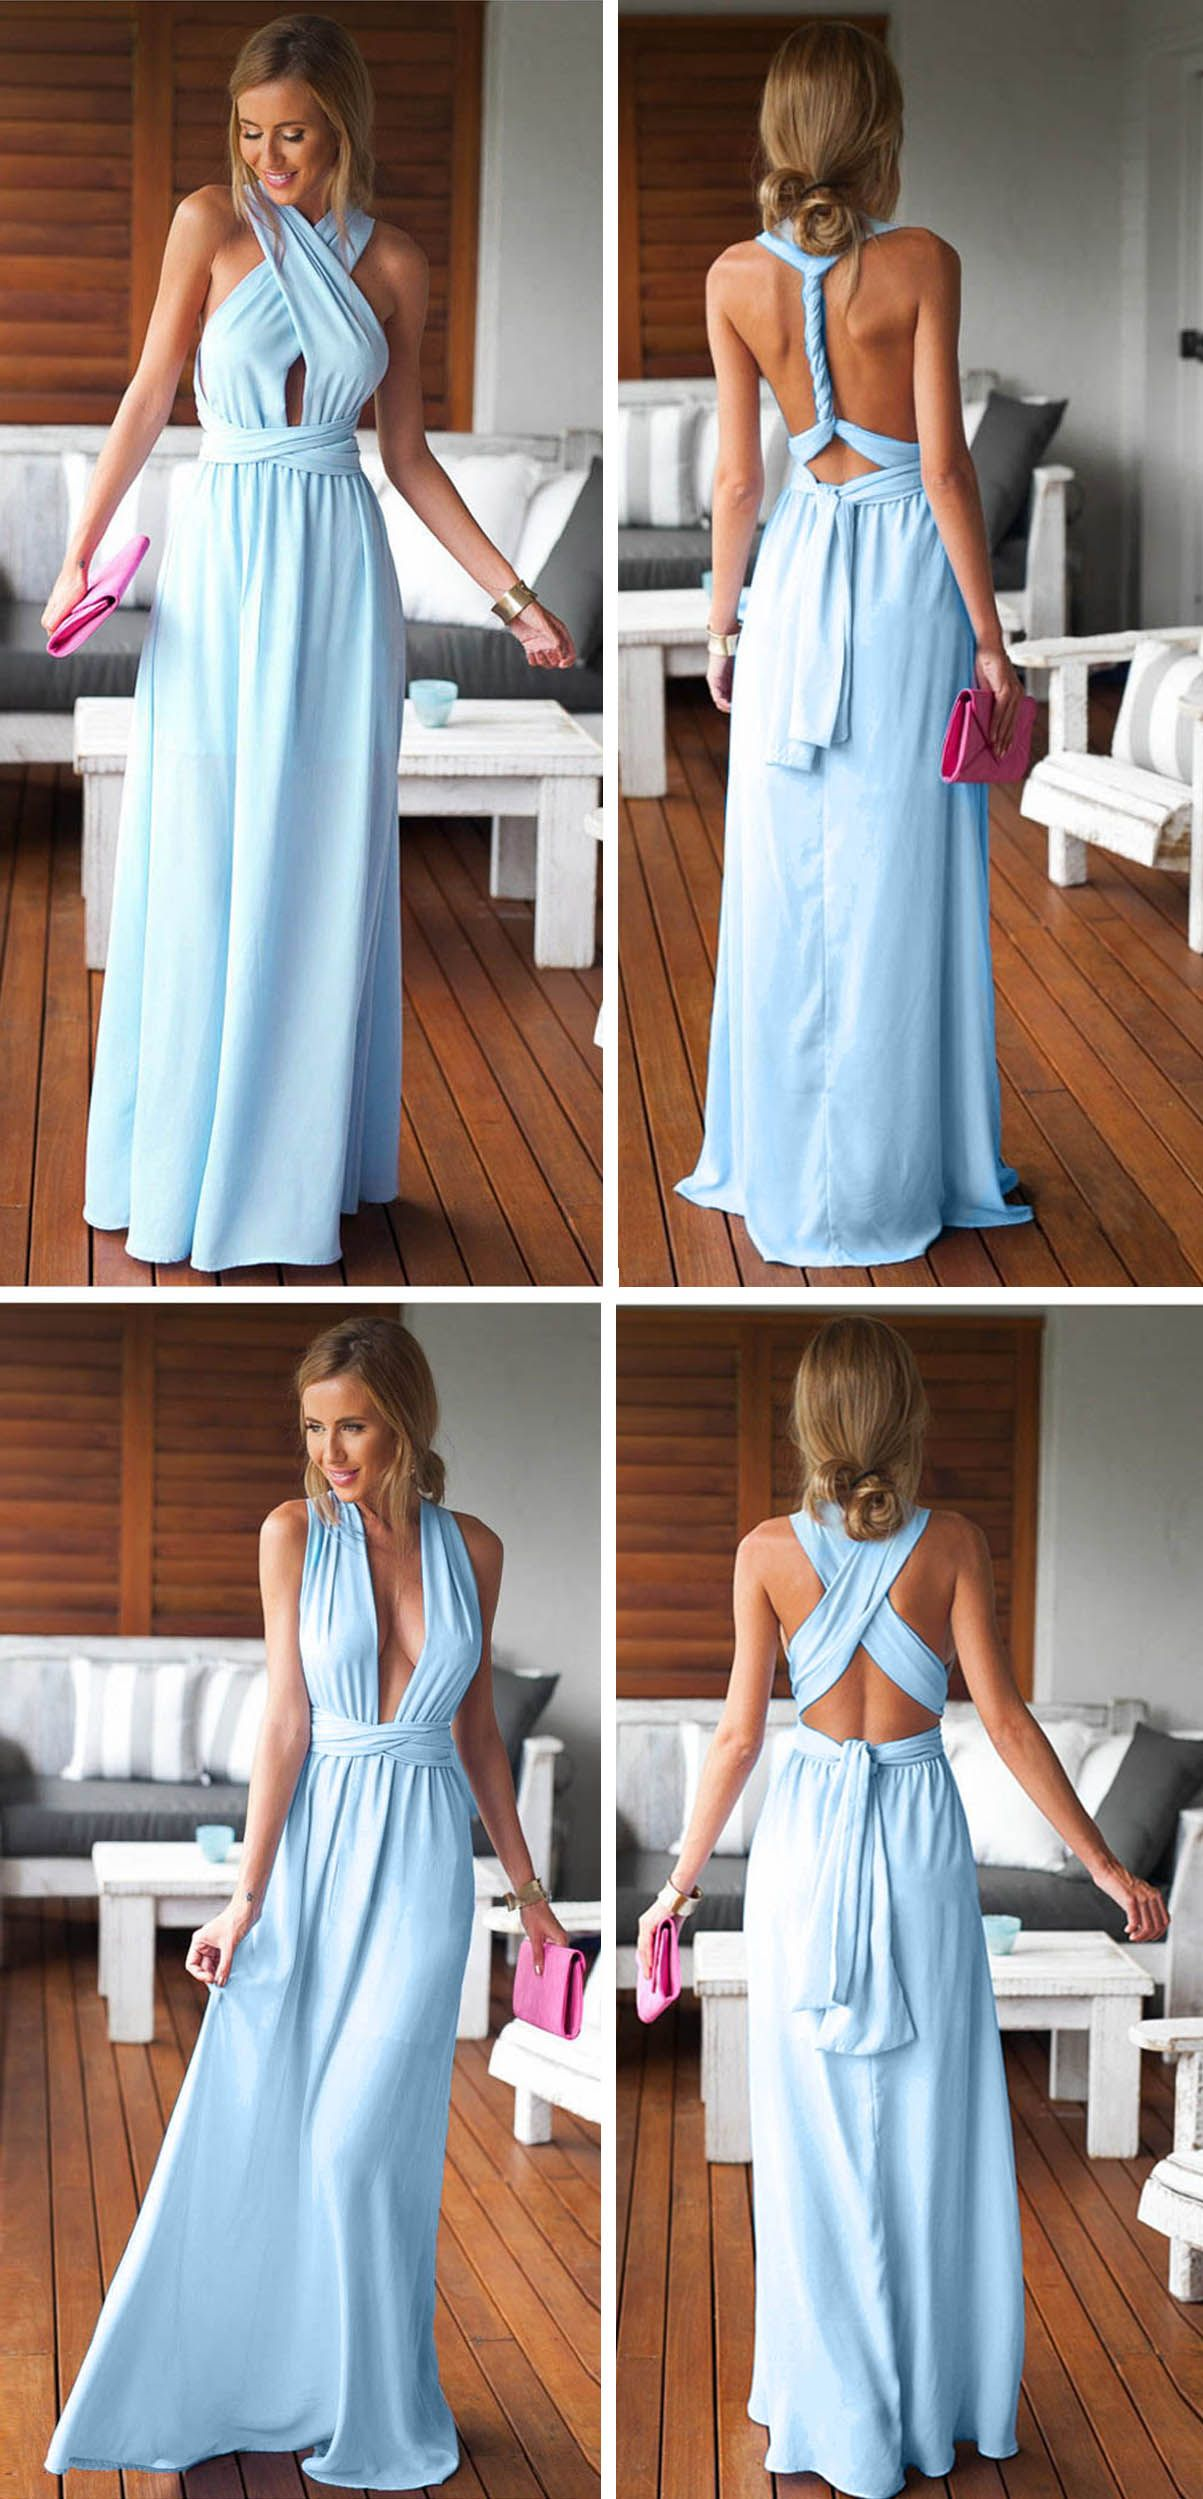 This Is A Perfect Date Dress You Can Have V Neck Style Or Crossover